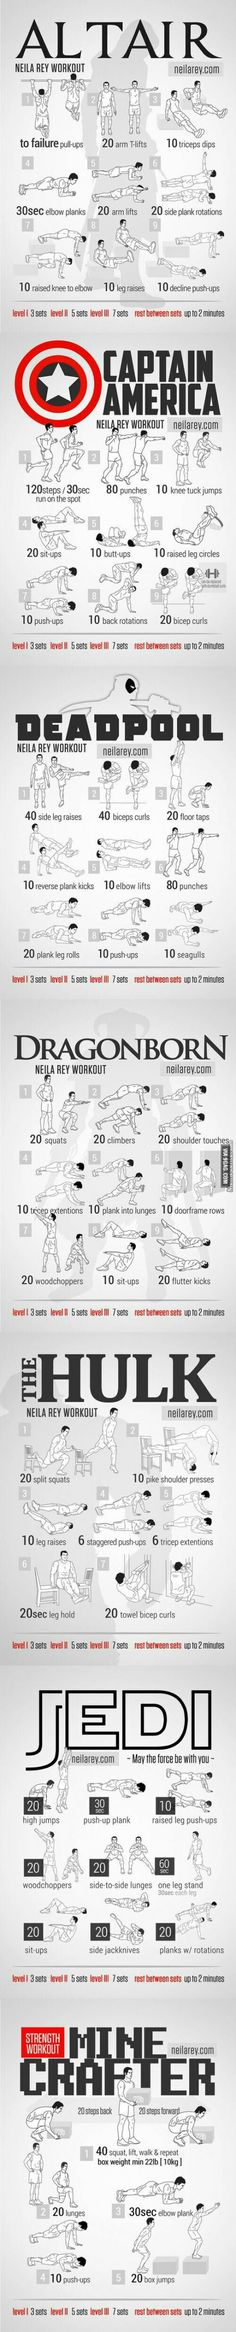 My work out guide this summer